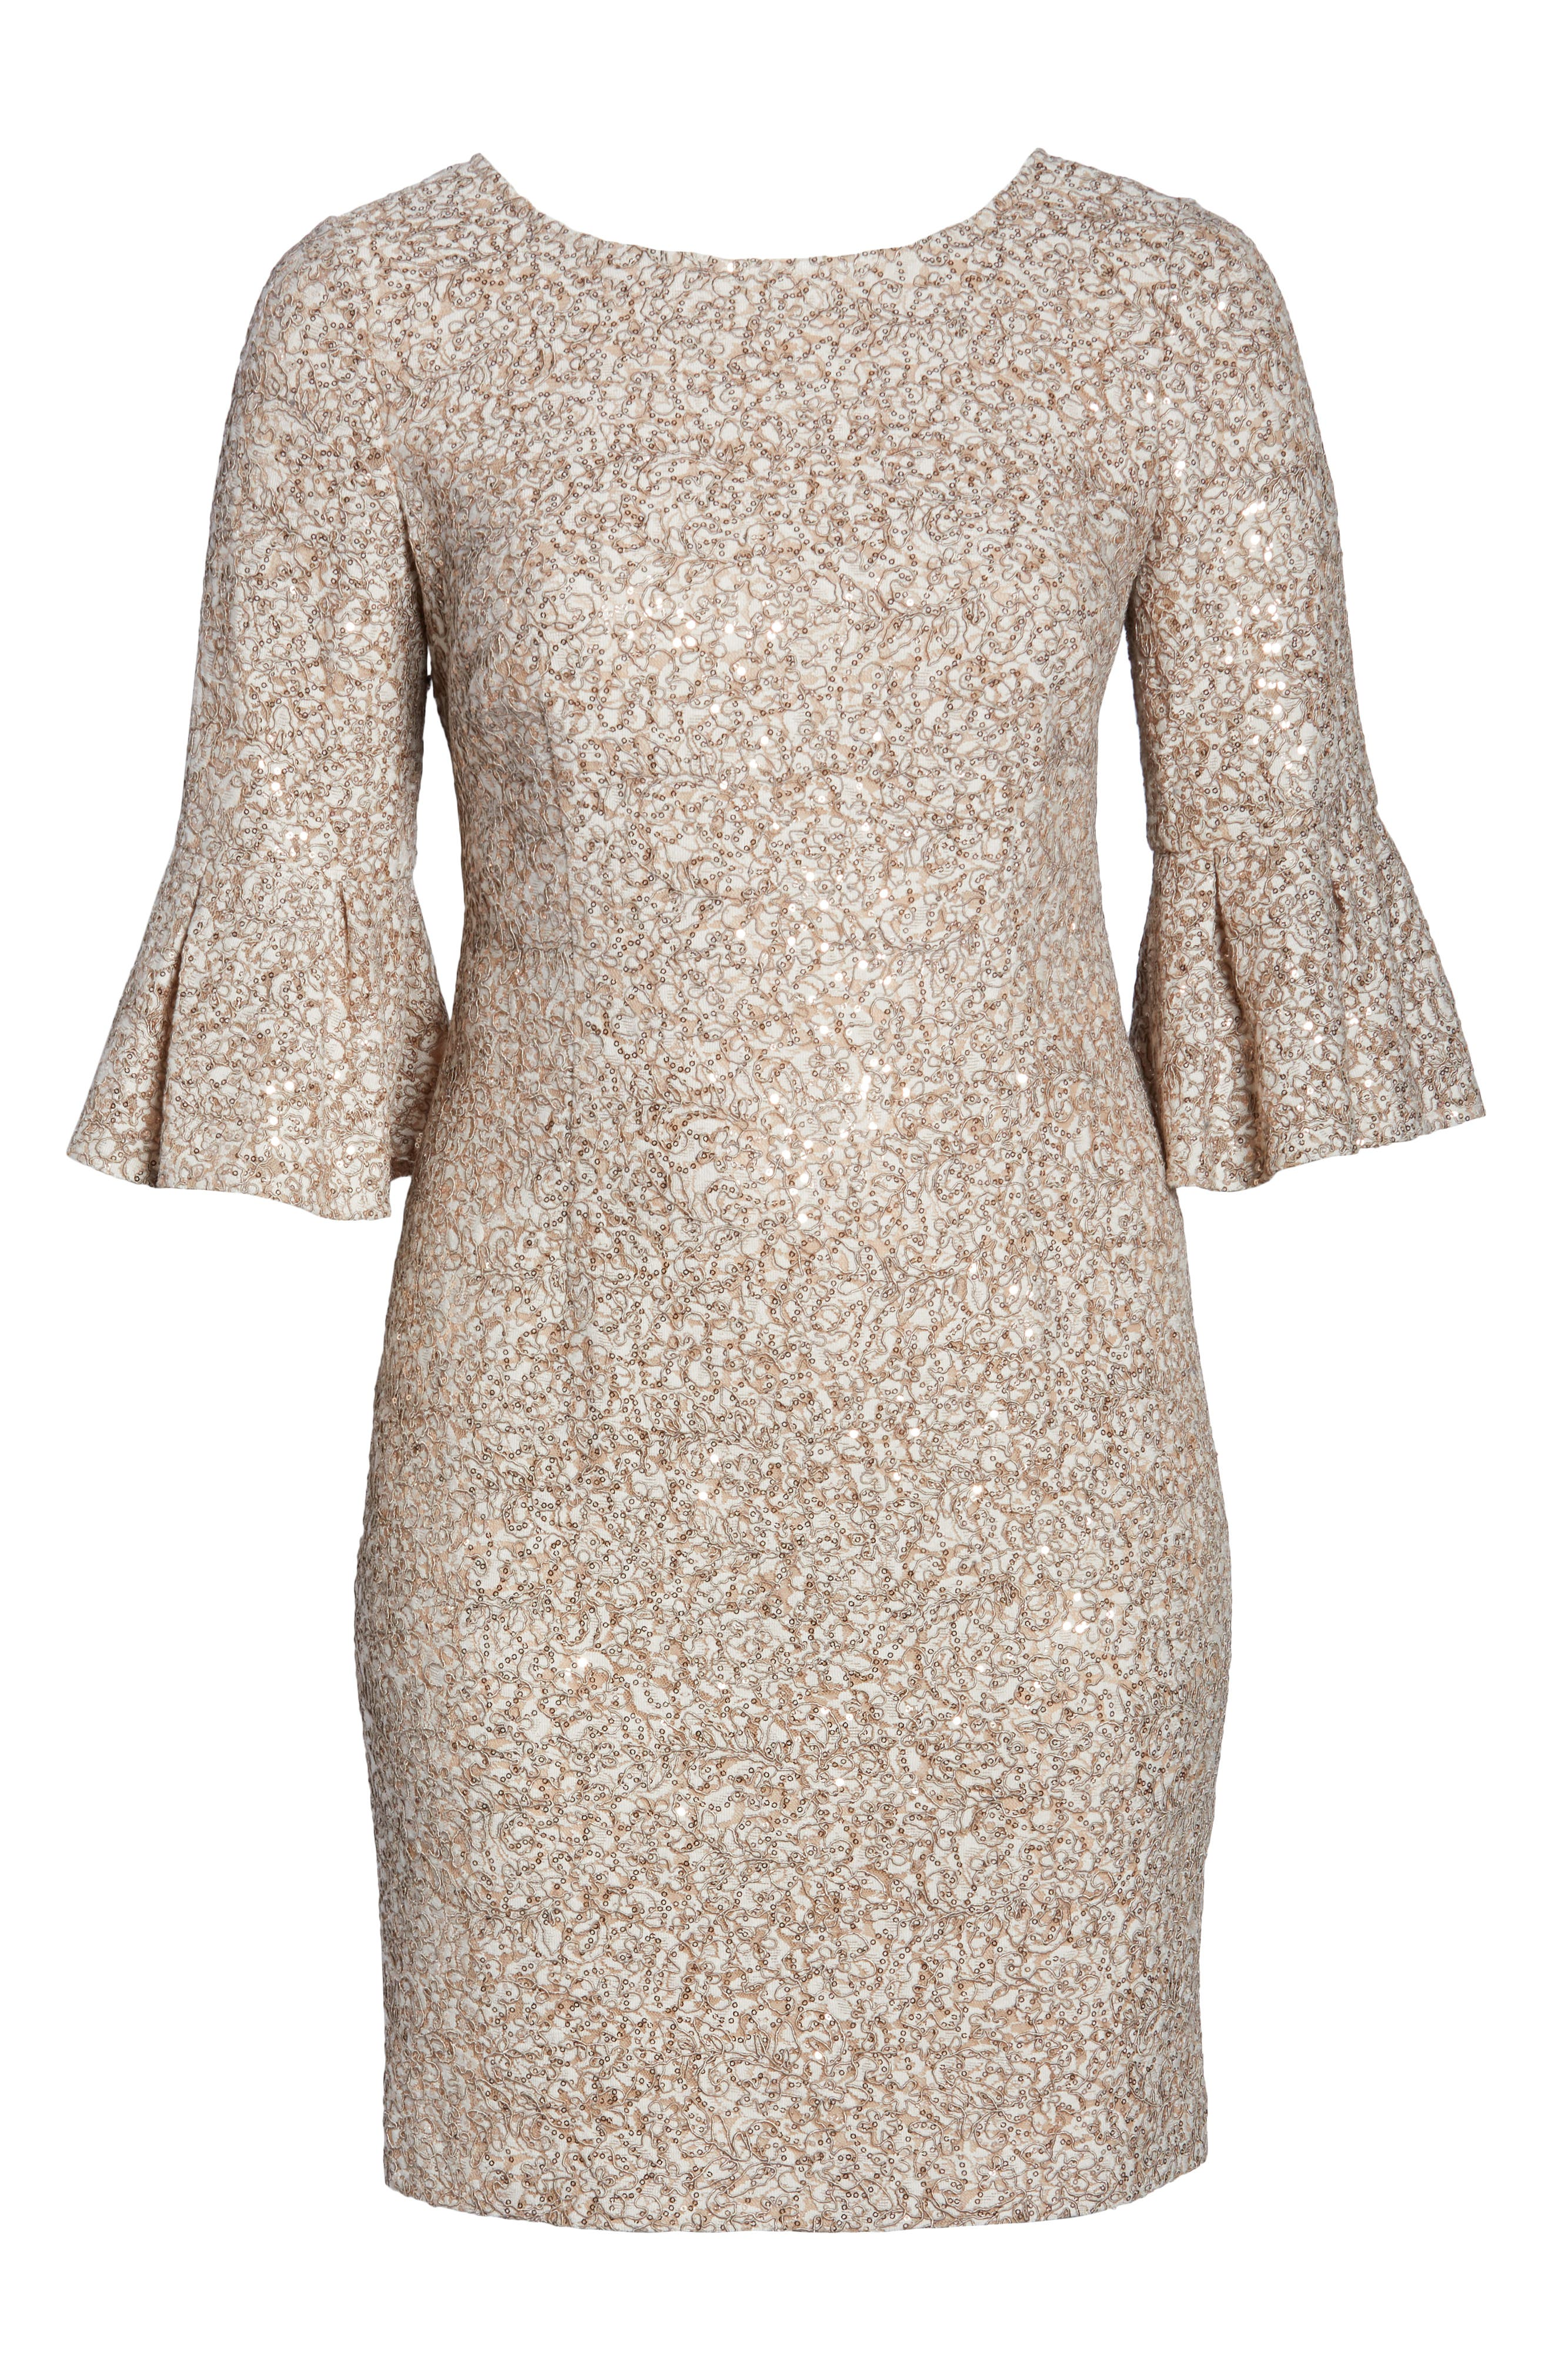 Embroidered Lace Shift Dress,                             Alternate thumbnail 6, color,                             CHAMPAGNE/ IVORY